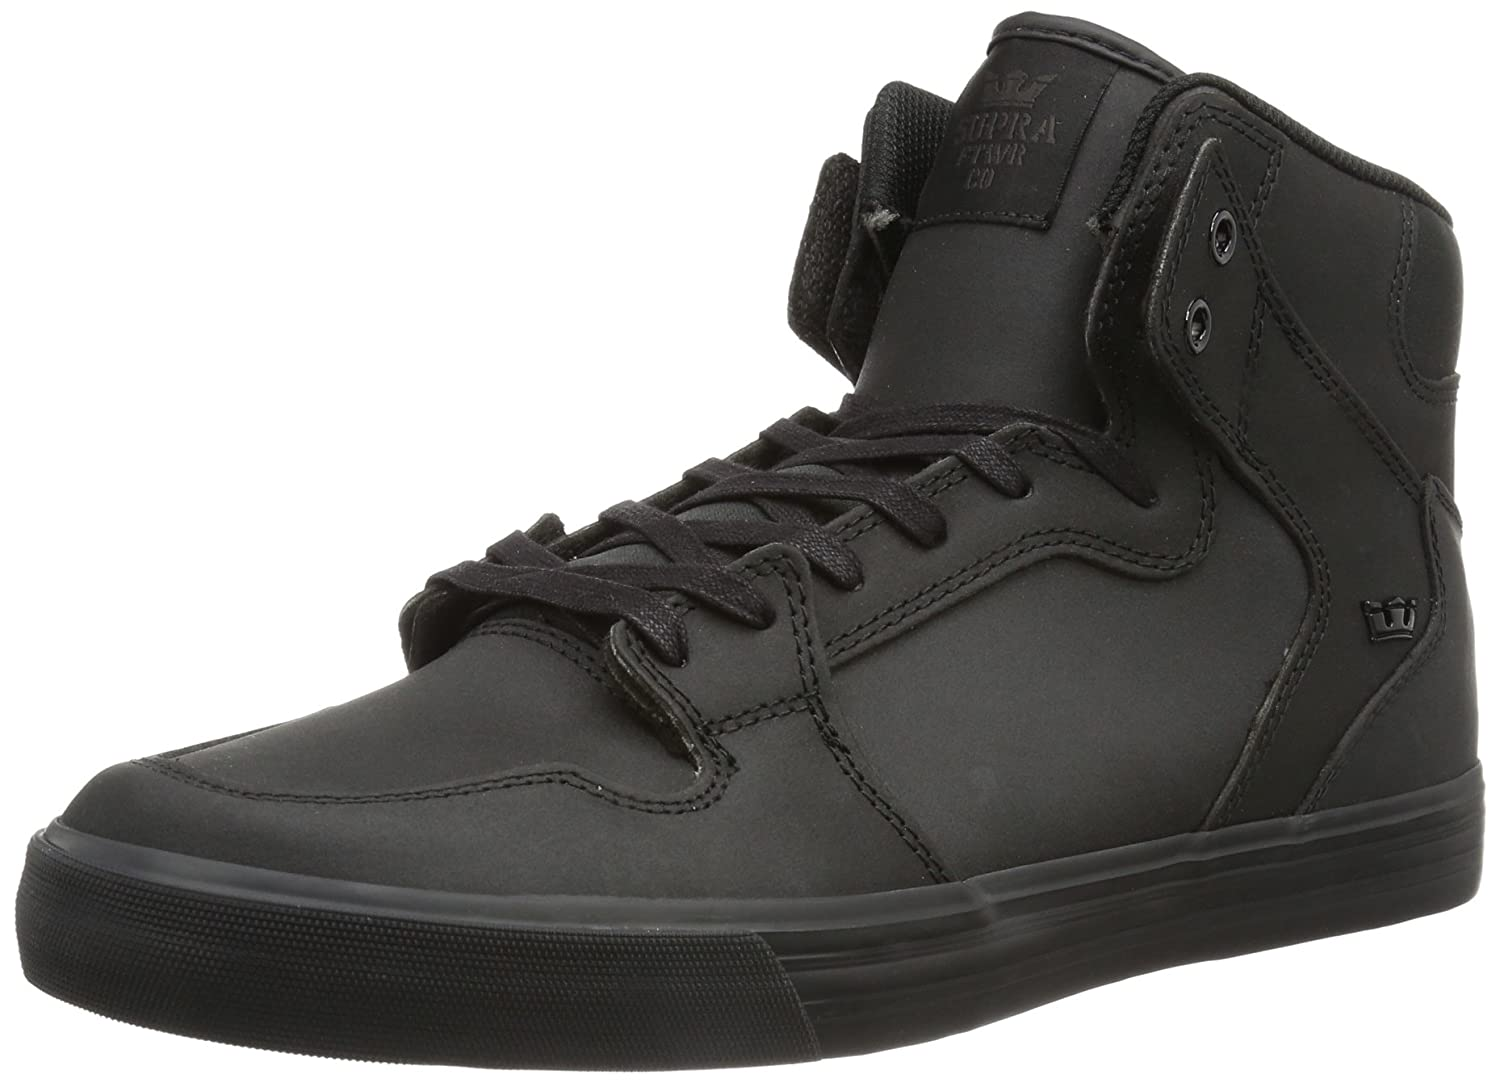 Supra Vaider LC Sneaker B008N0VQN4 Medium / 9.5 C/D US Women / 8 D(M) US Men|Black Satin Tuf